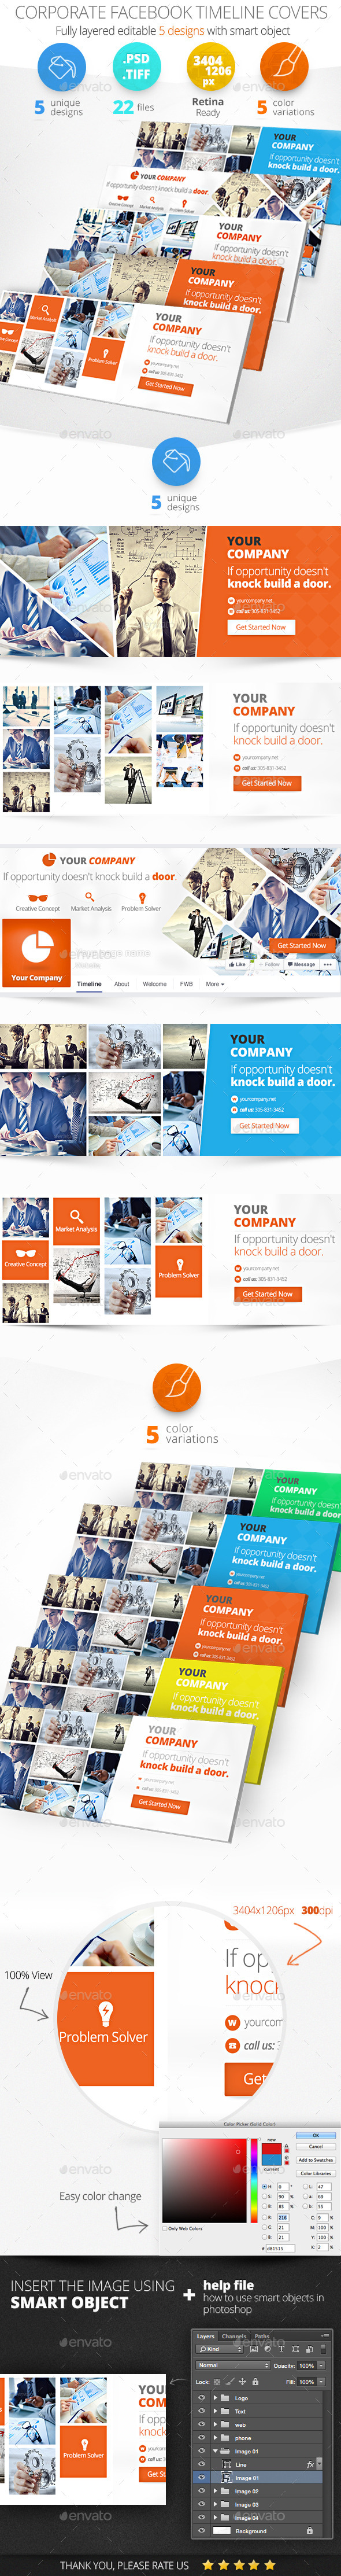 GraphicRiver Corporate Facebook Timeline Covers 11335918